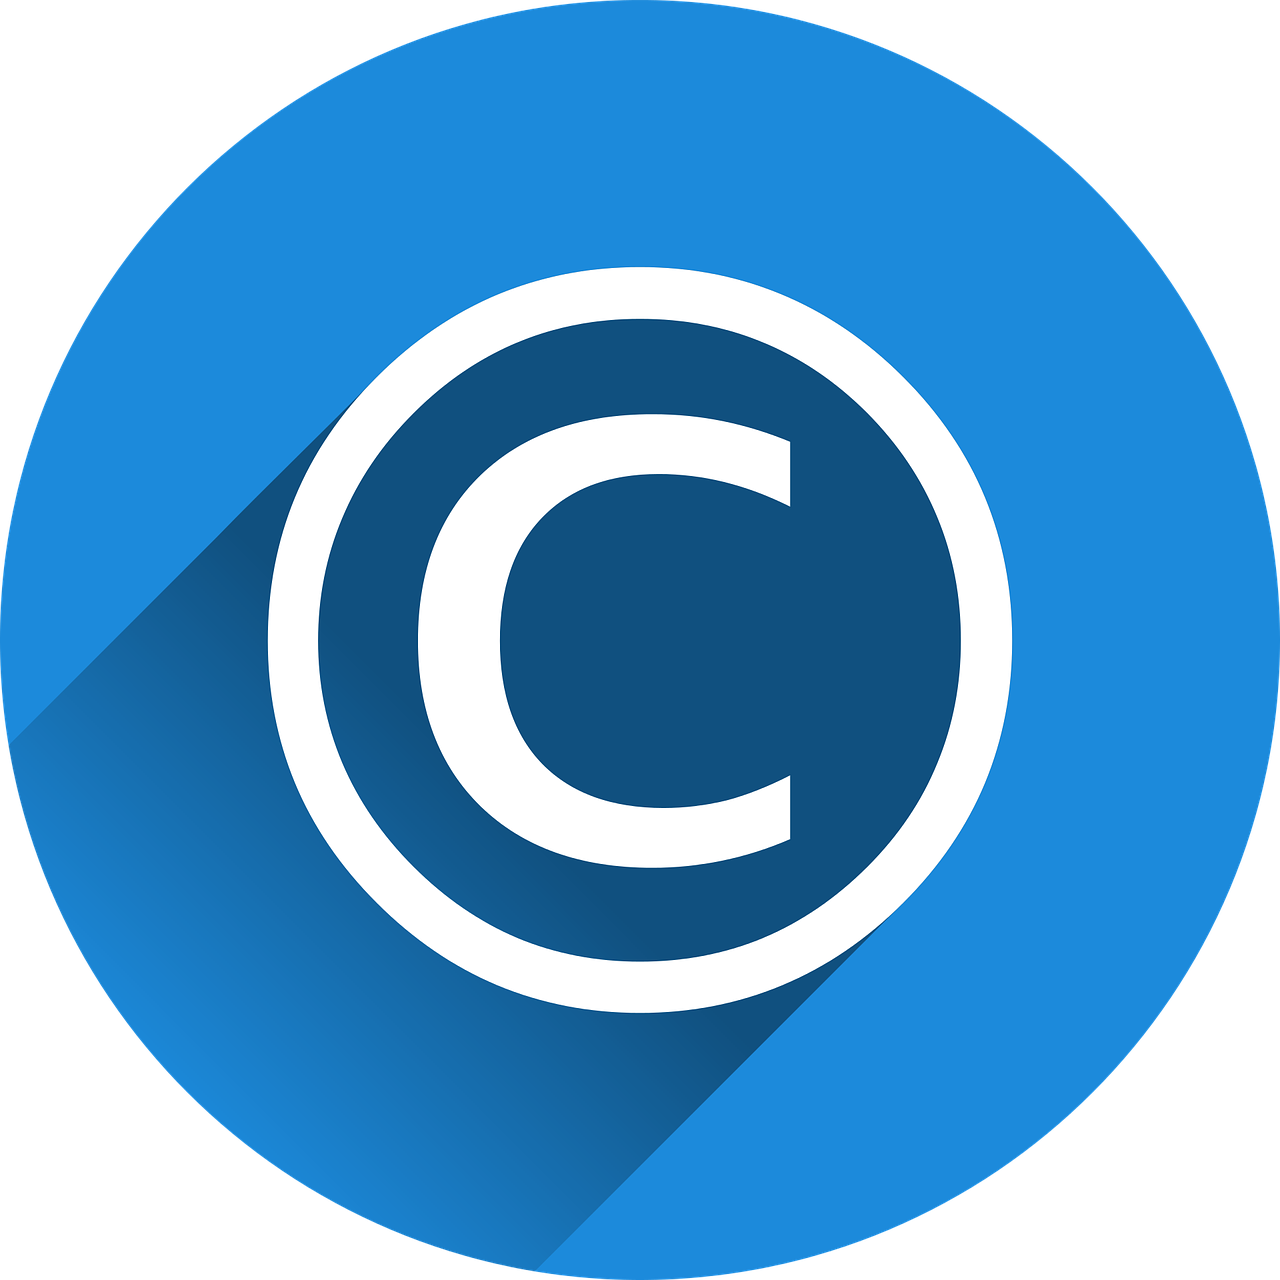 copyright symbol, blue and white